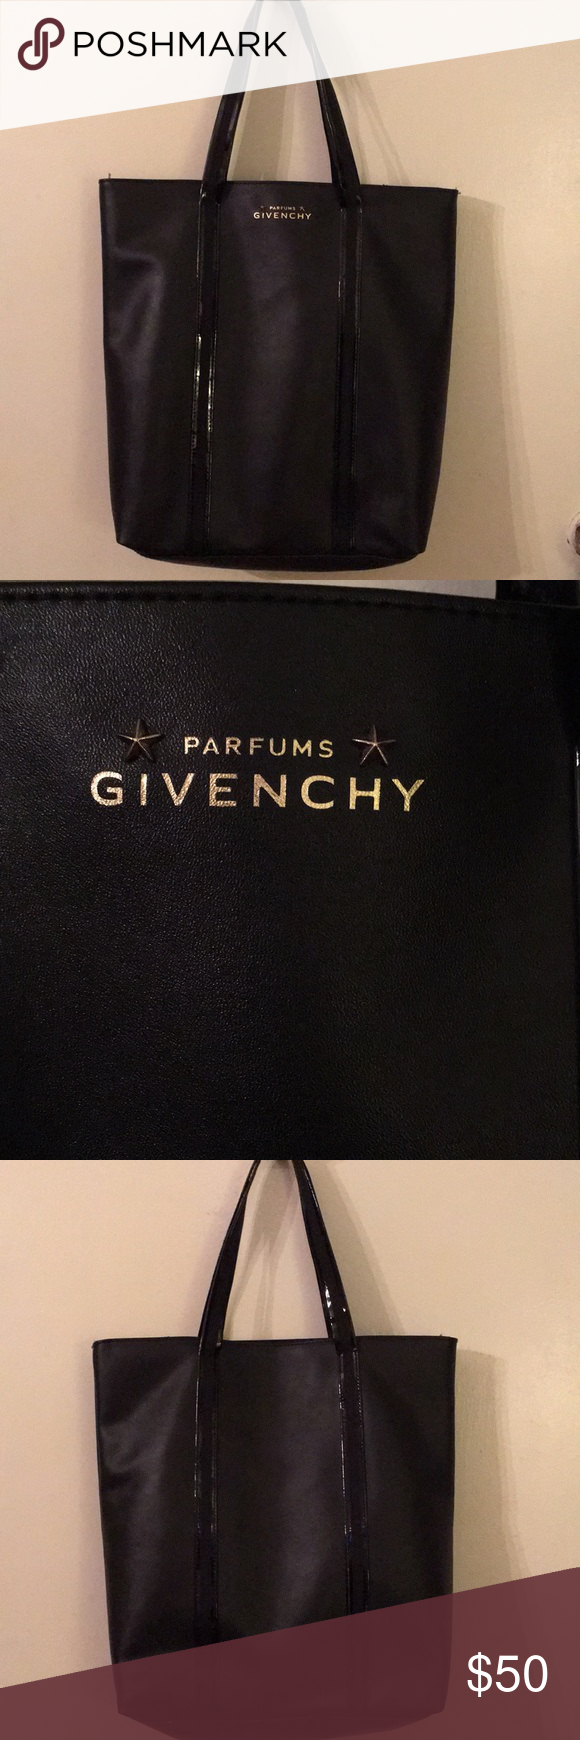 Bag Vip Parfums Tote Givenchy Authentic WEDHY2e9Ib